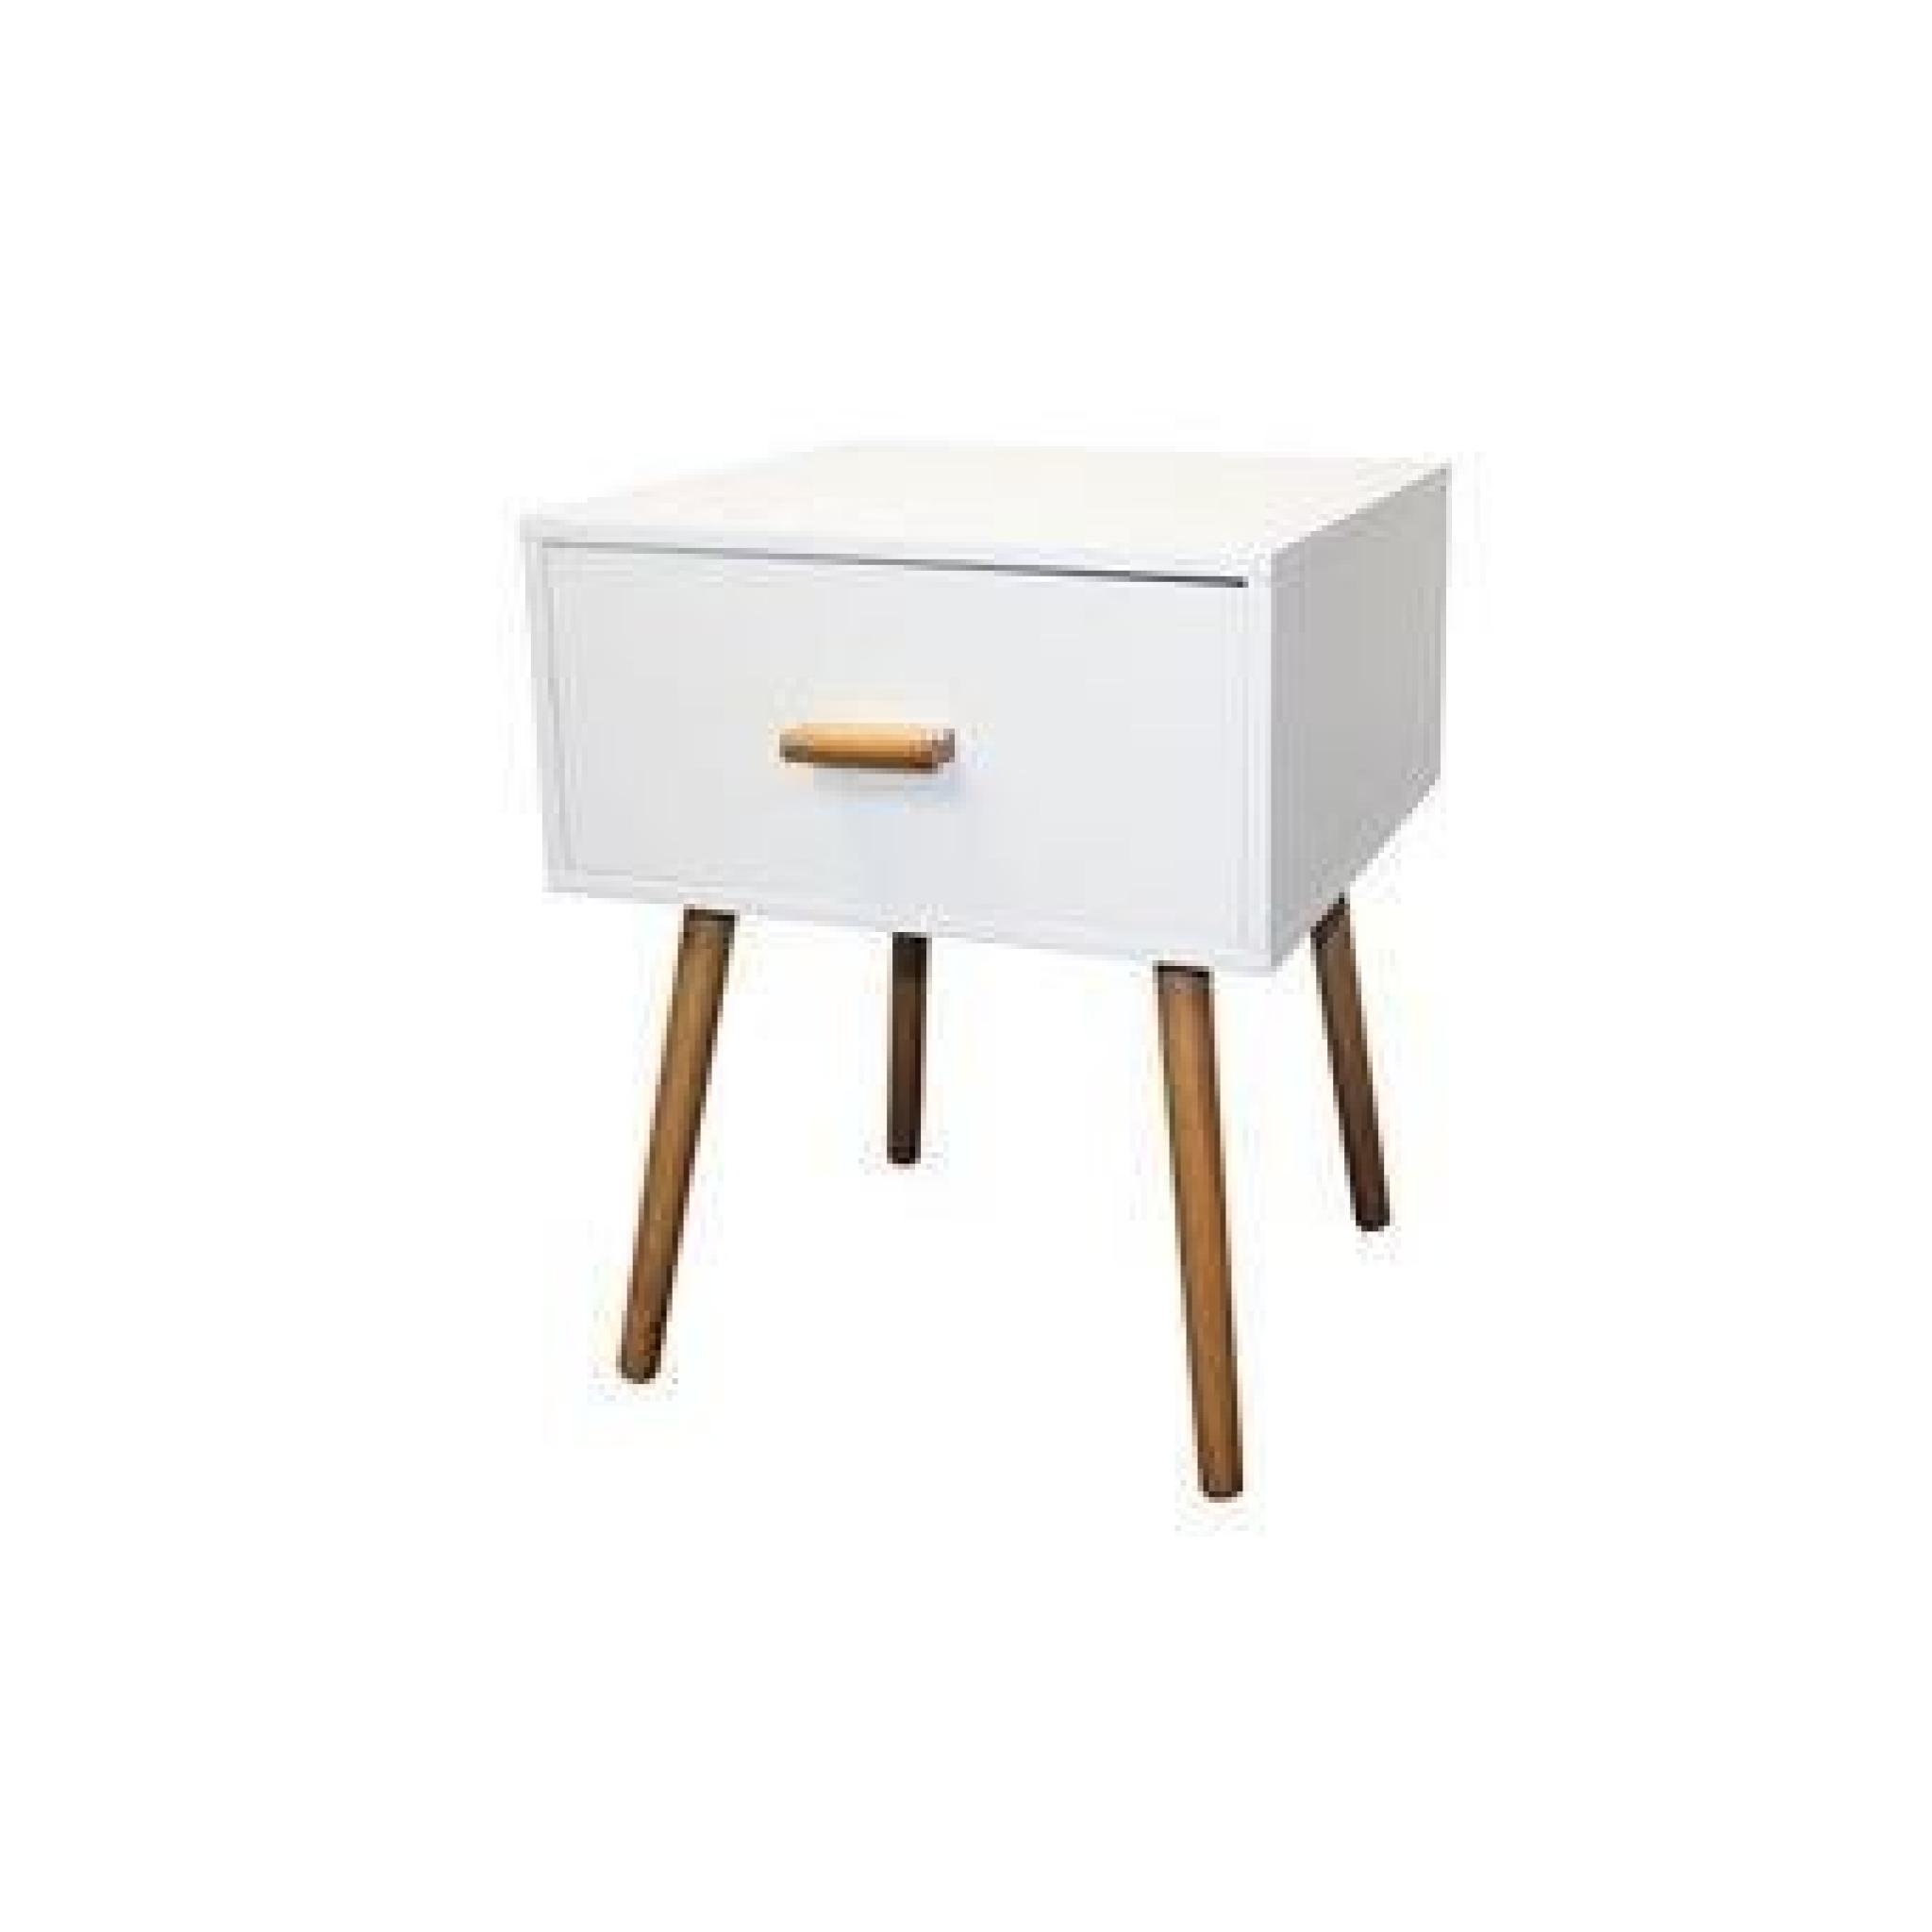 Table de chevet blanc design scandinave achat vente - Table de chevet design ...